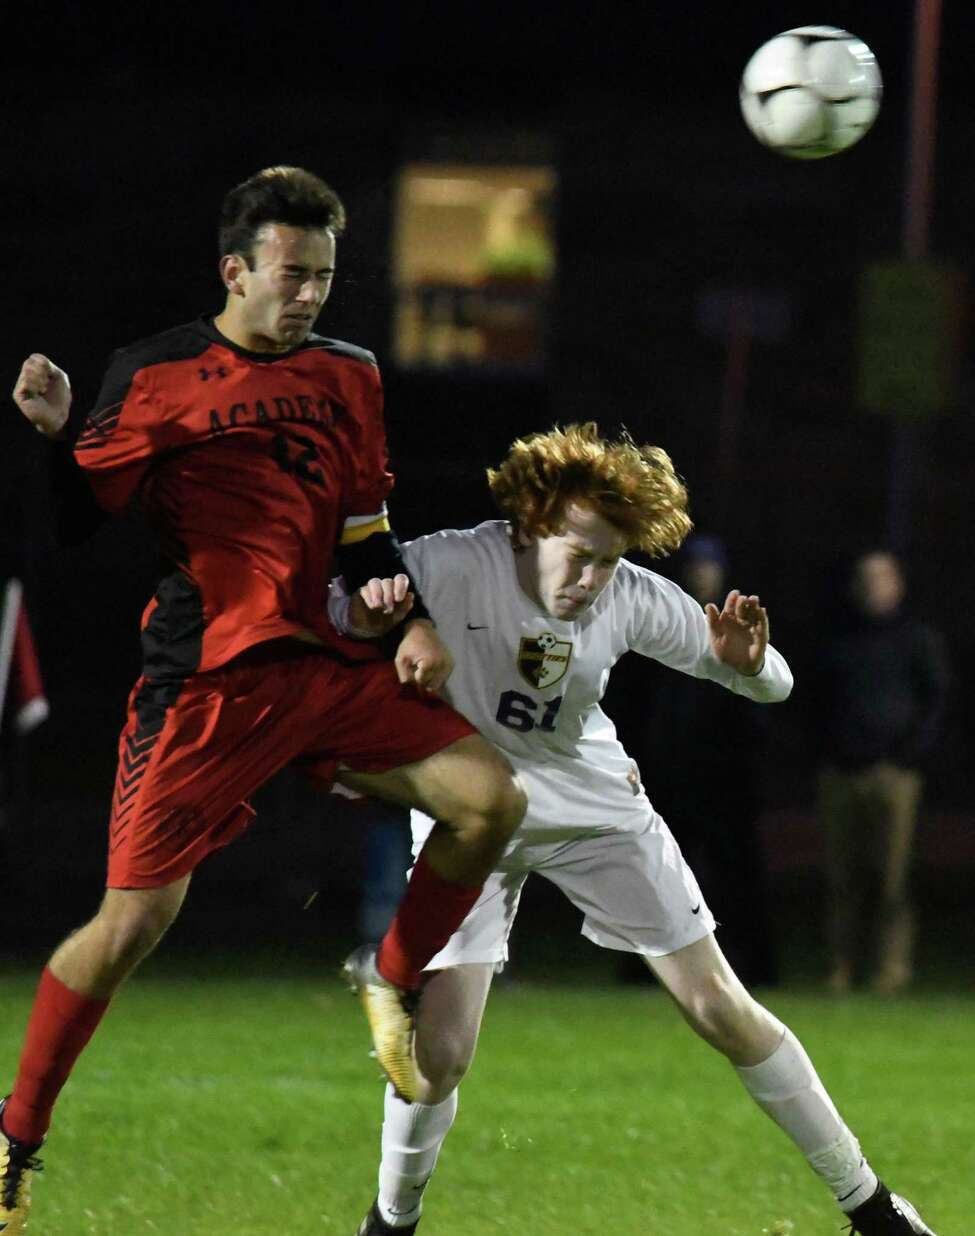 Albany Academy's Thomas Fiebich and Ballston Spa's Justin Waters jump to head the ball during their Class A sectional semifinal at South Colonie High School on Wednesday, Oct. 24, 2018, in Colonie, N.Y. (Jenn March, Special to the Times Union)